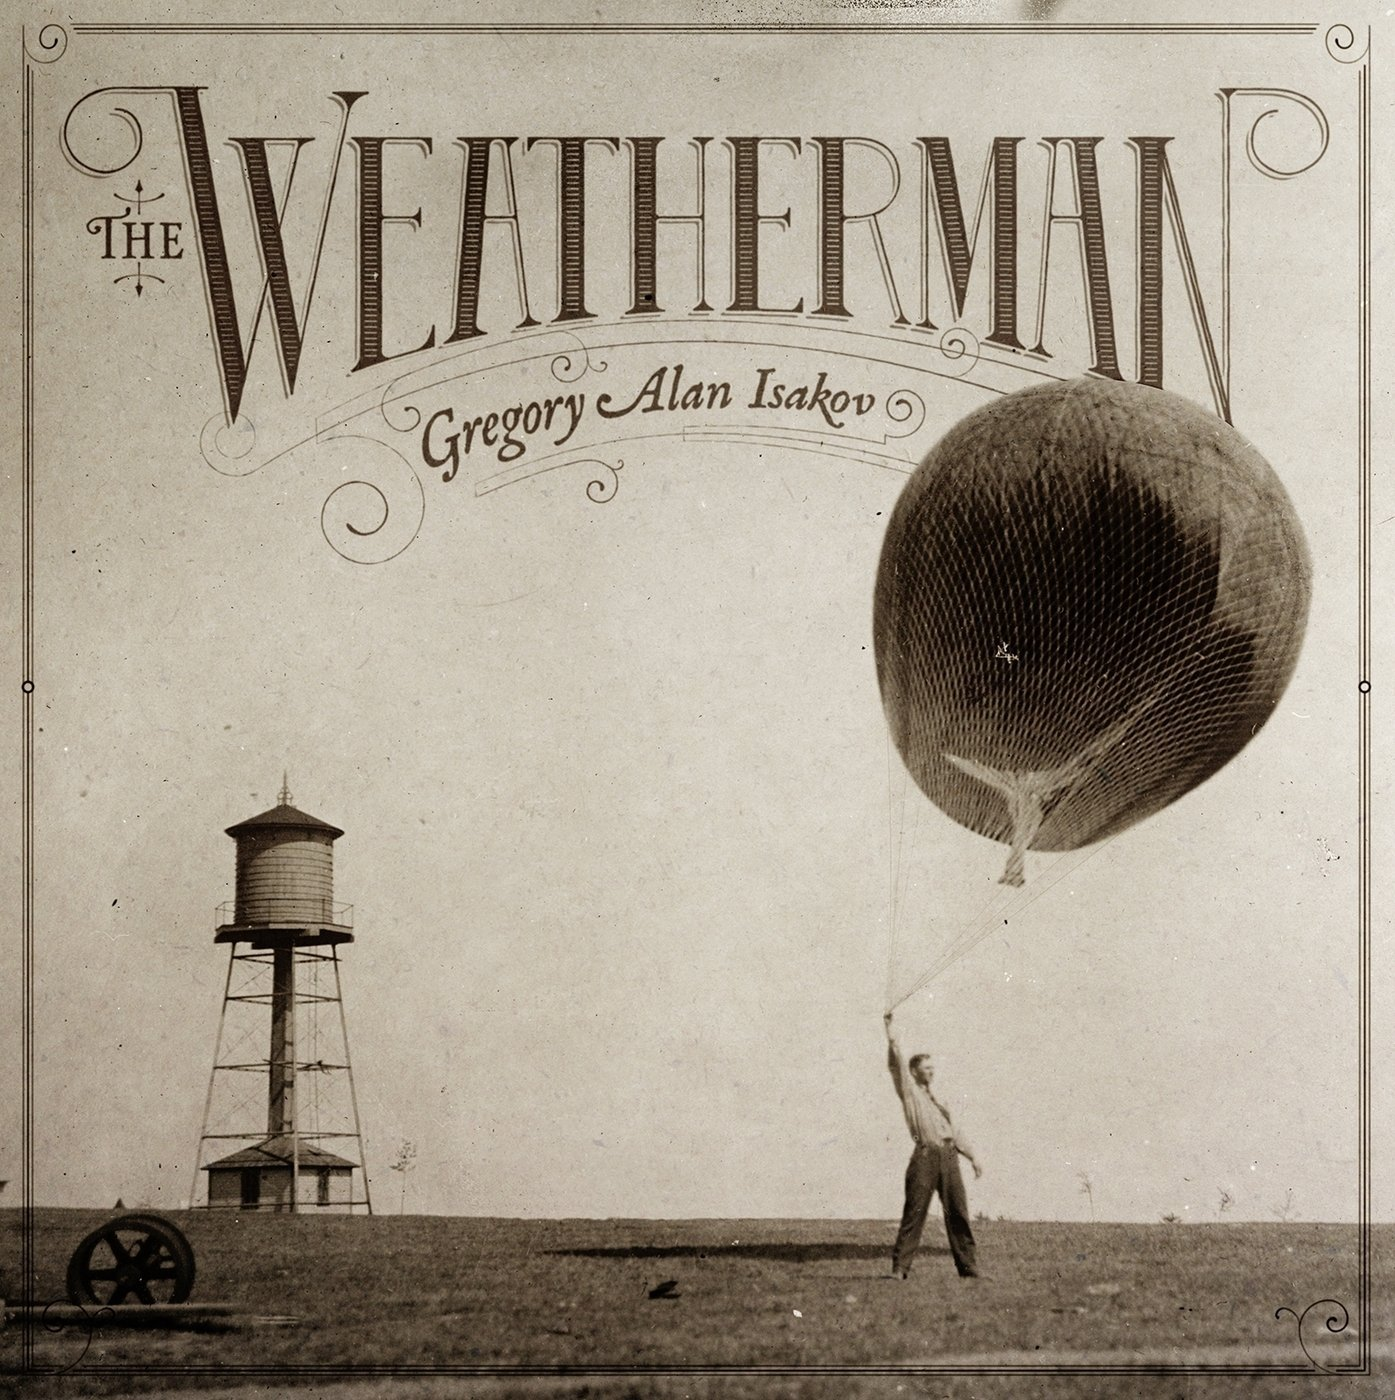 gregory-alan-isakov-cover-the-weatherman